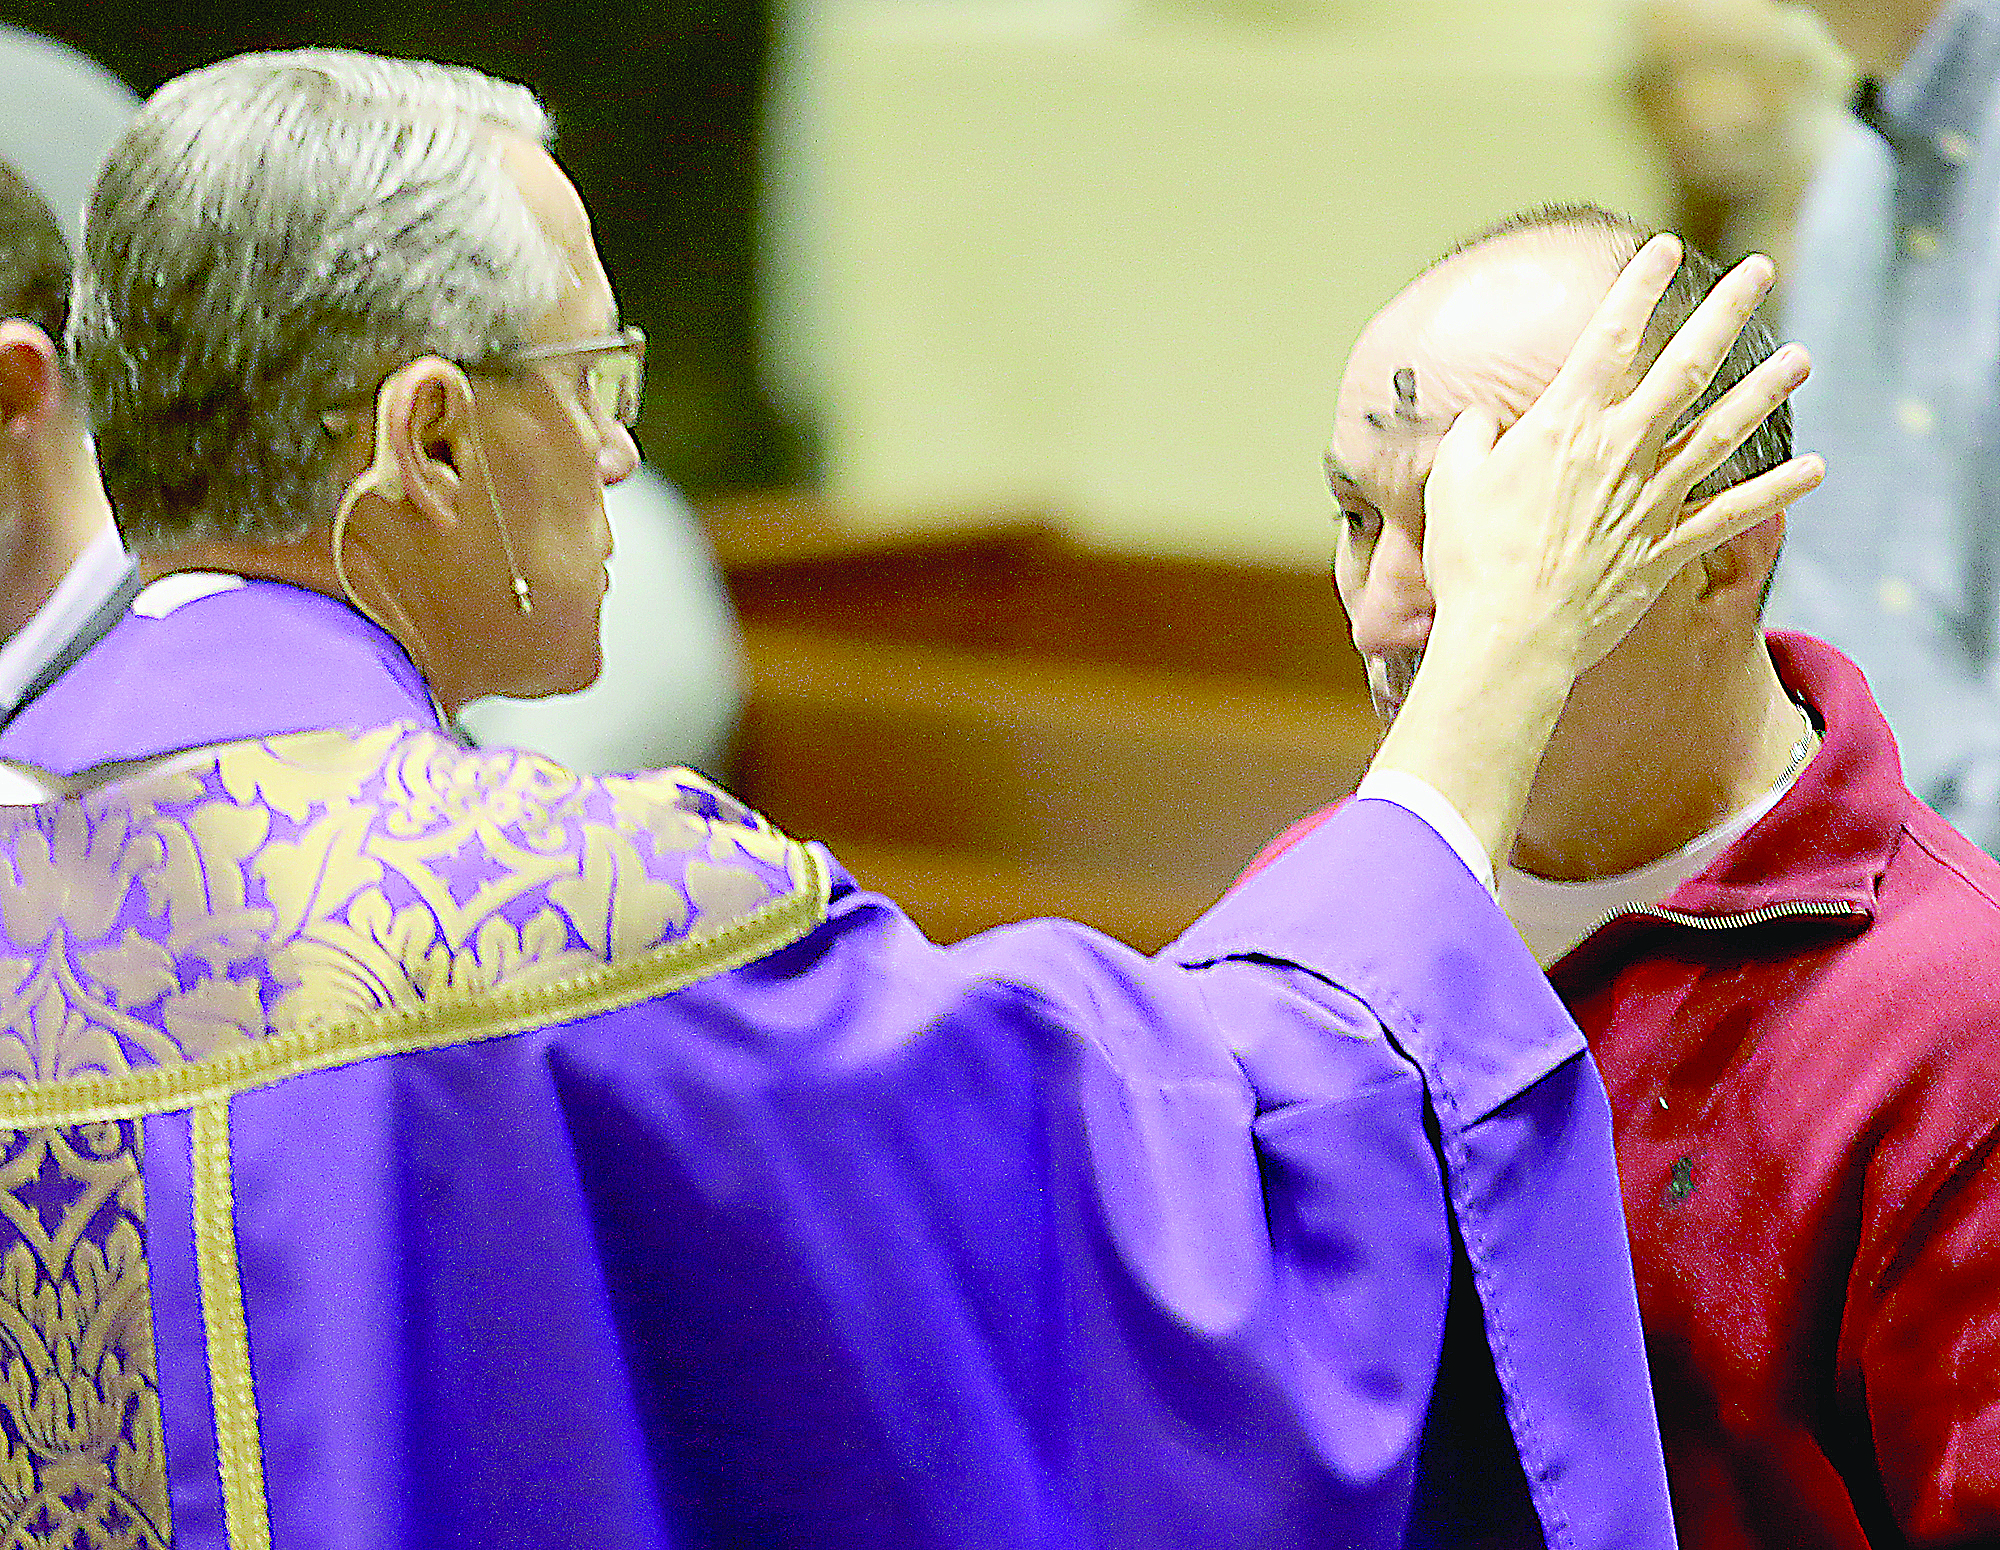 Rev. Raymond Larger marks a parishioner's forehead with the sign of a cross during Ash Wednesday services at St. Peter in Chains Cathedral in Cincinnati Wednesday, Mar. 1, 2017. (CT PHOTO/E.L. HUBBARD)